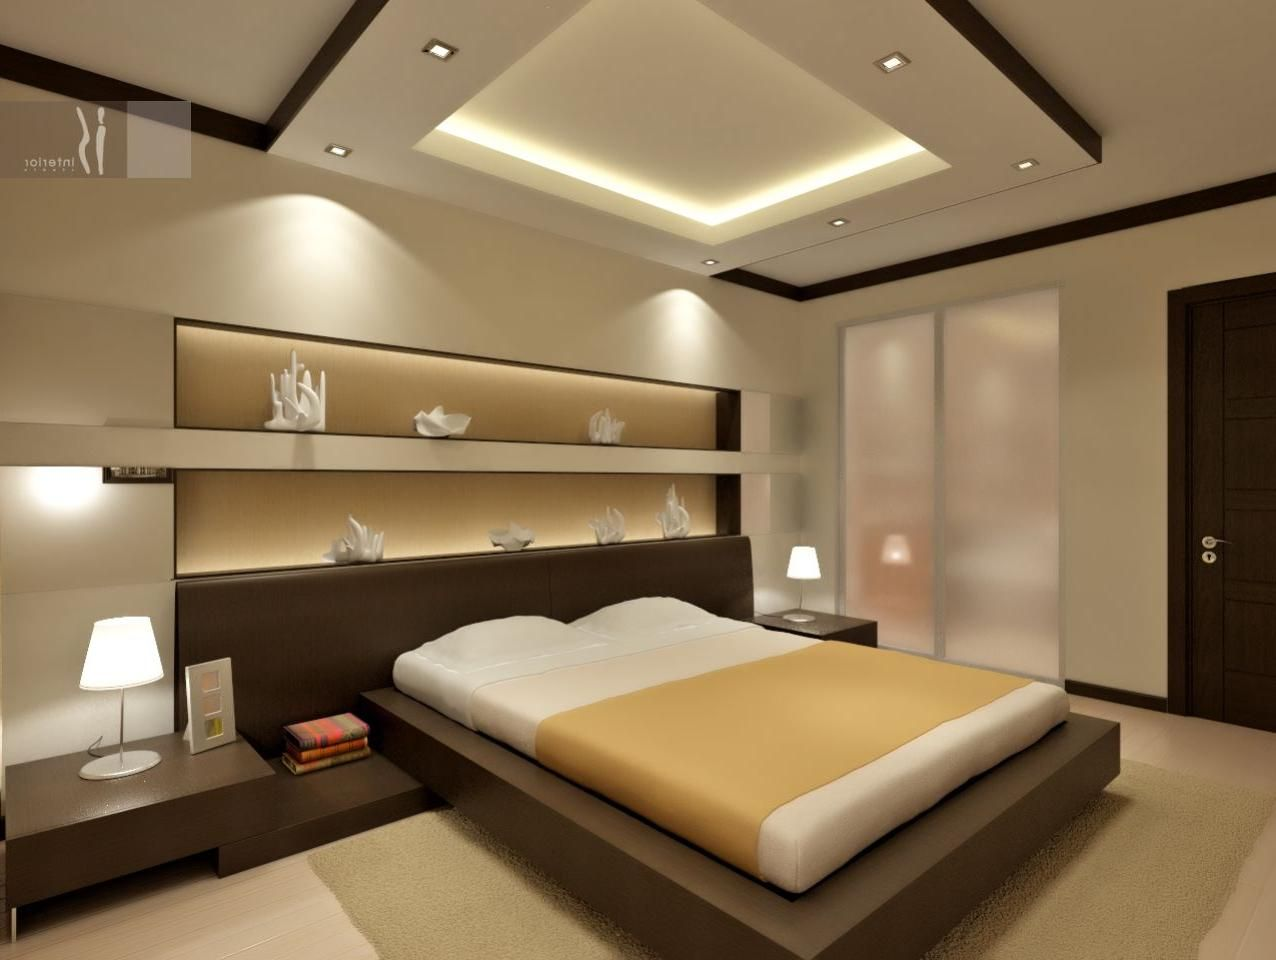 Master bedroom bedroom ceiling decor   Vaulted Ceiling Ideas To Steal From Rustic to Futuristic